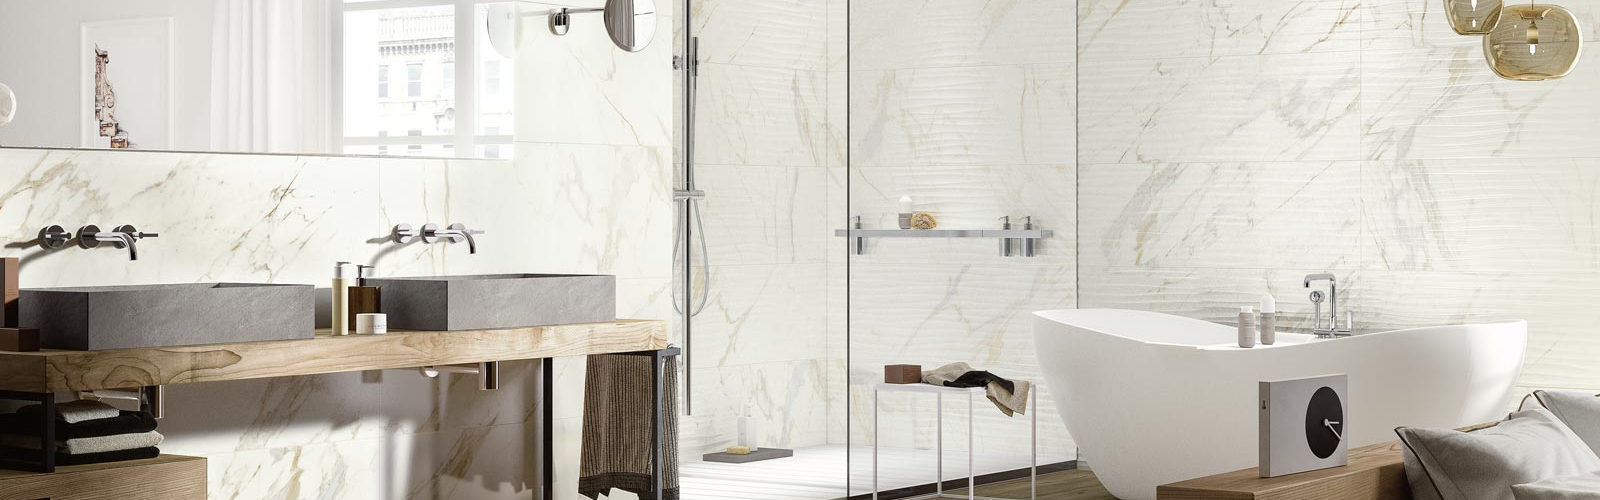 Kitchen Tiles Malta carini stores ltd. - your one stop bathroom and tile outlet in malta